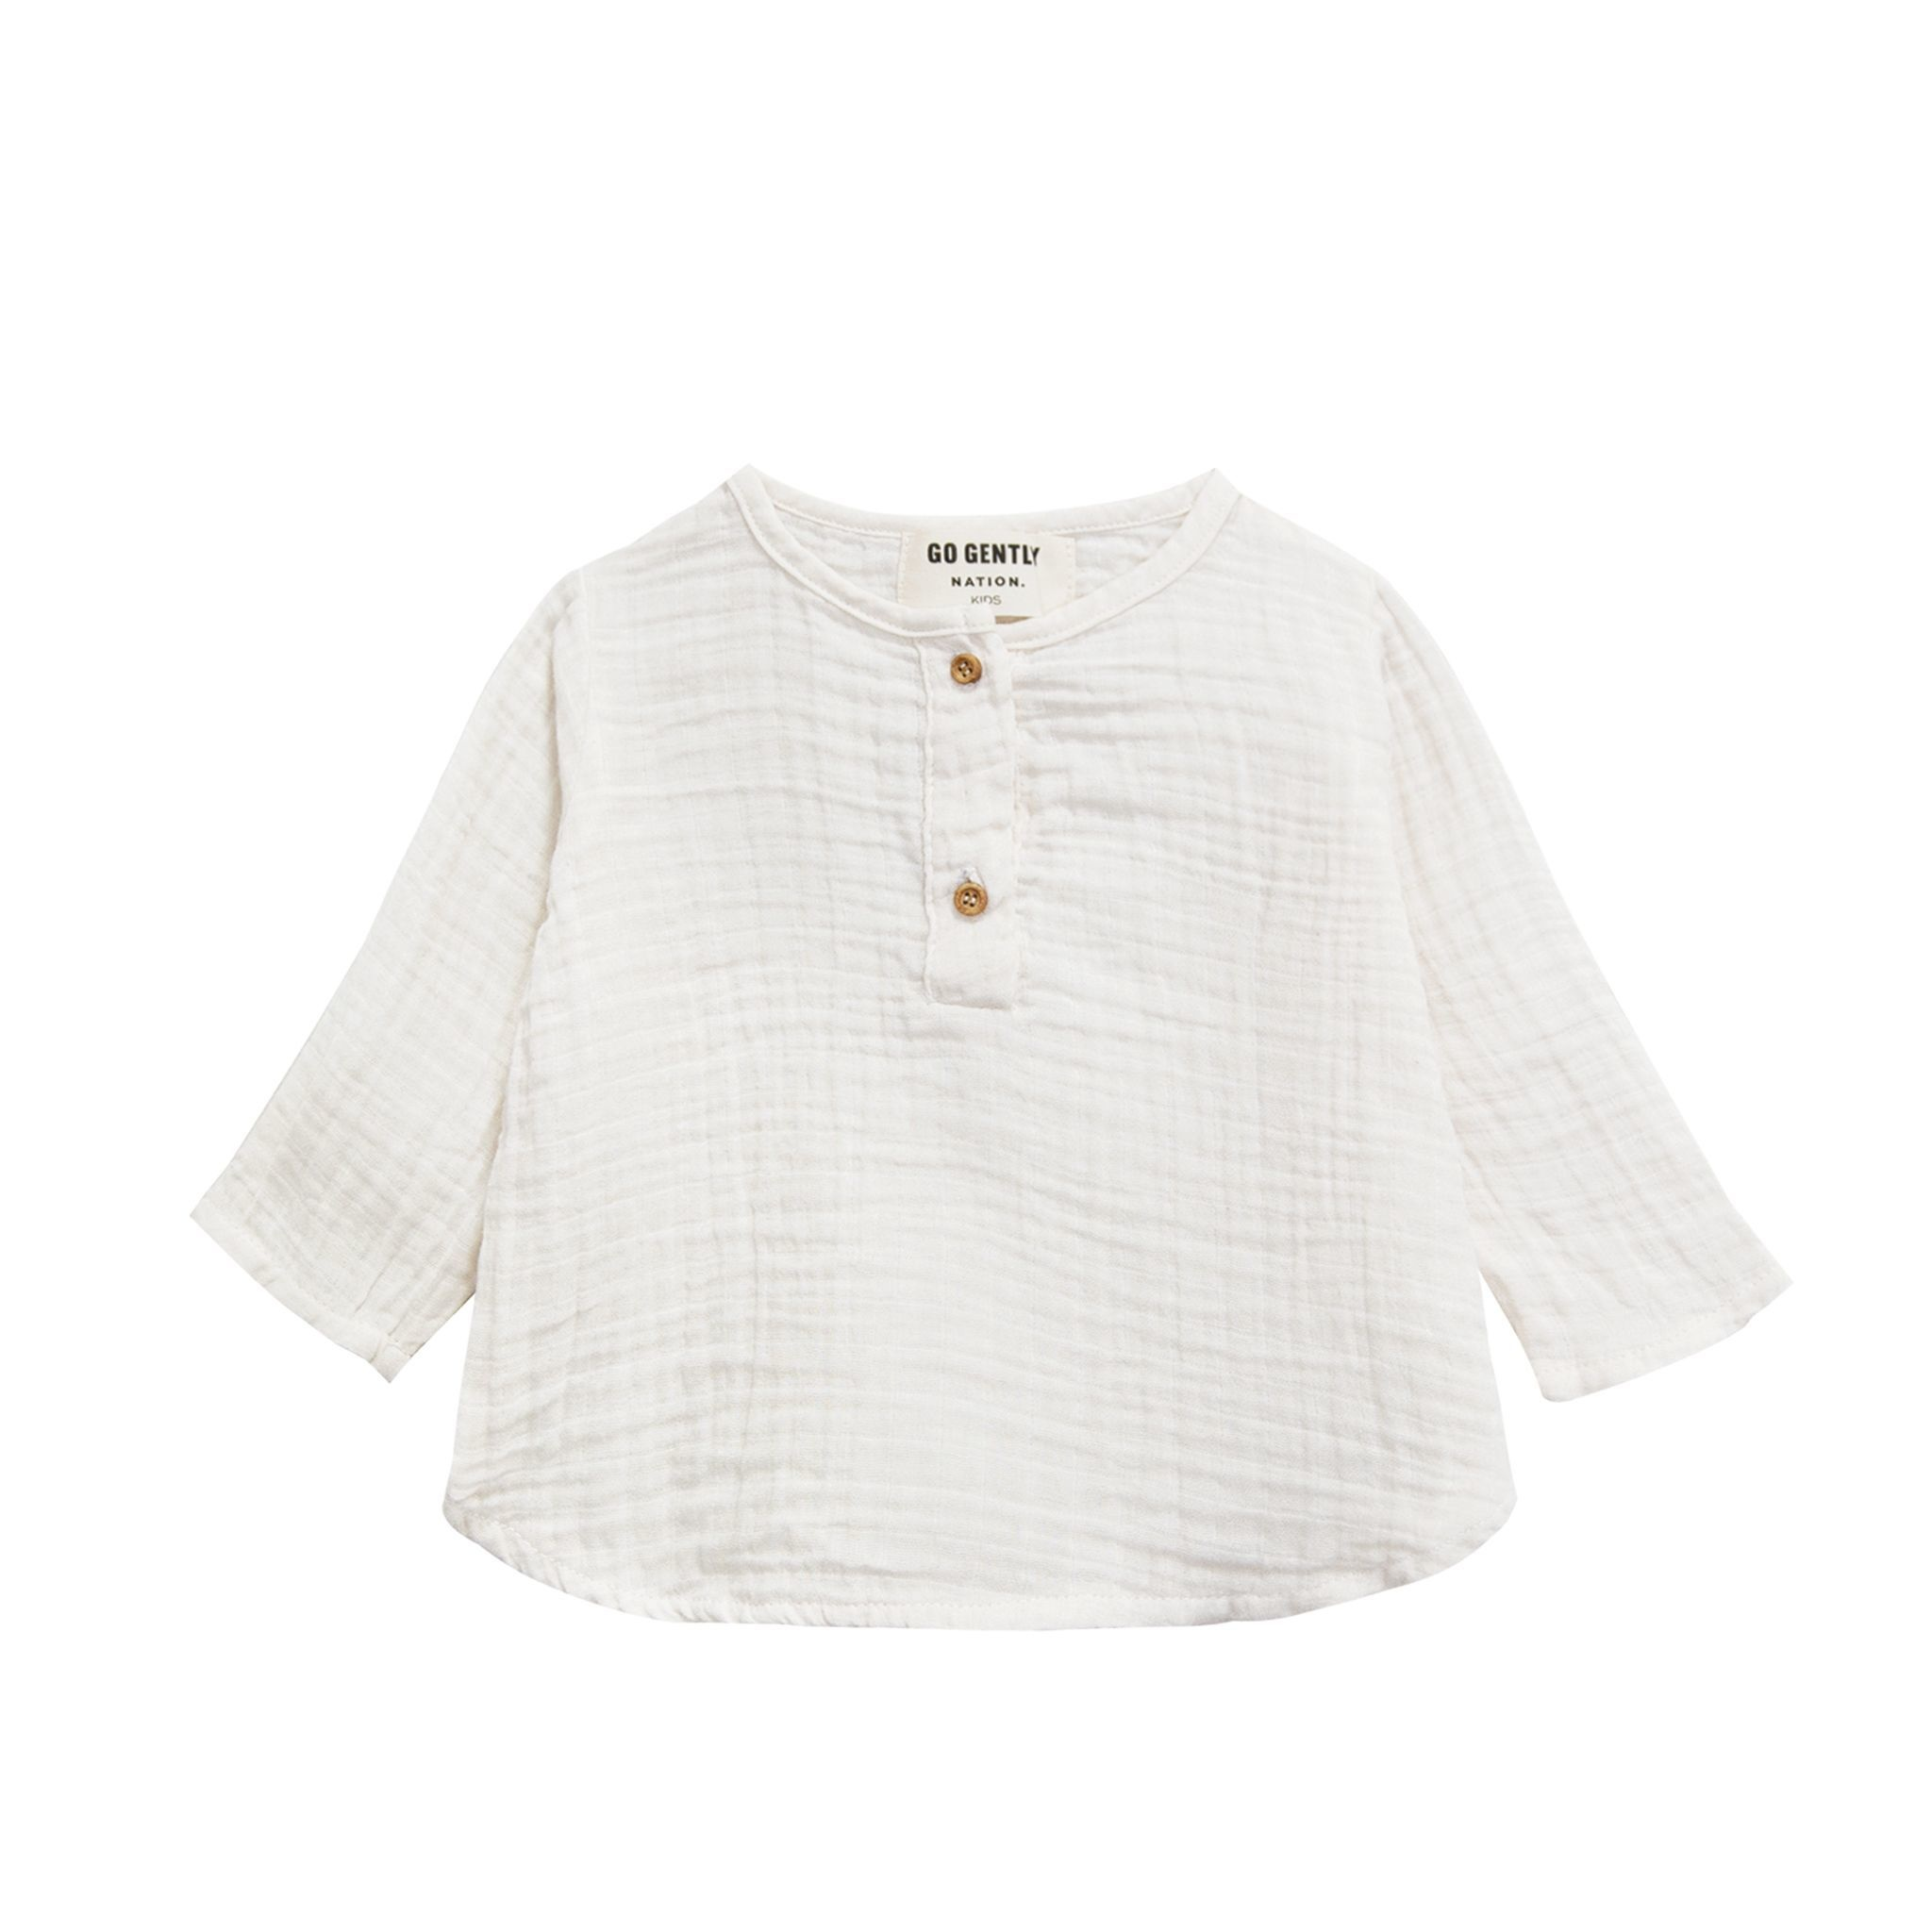 GOGENTLYNATION Gauze Placket Top